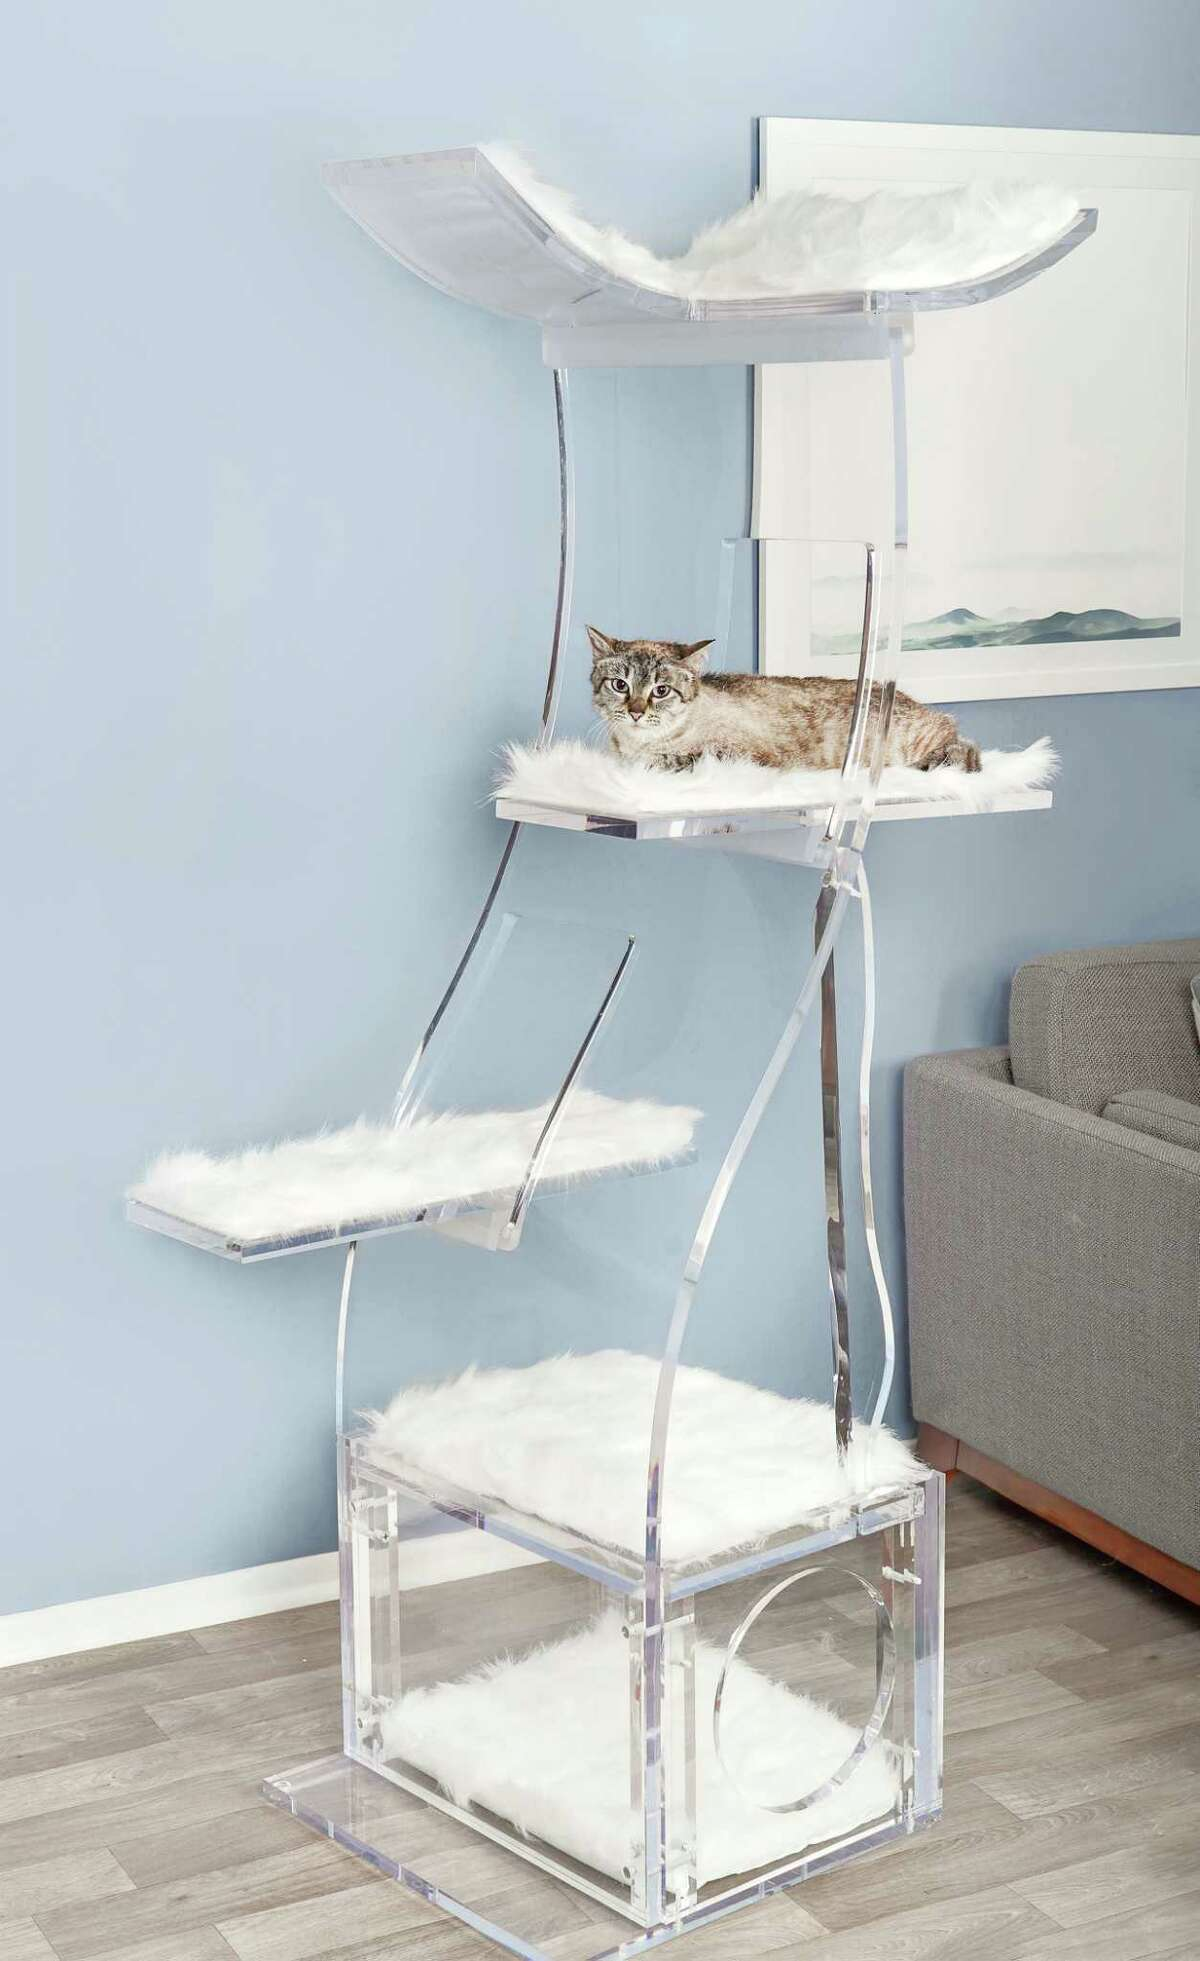 Refined Feline's Crystal Clear Lotus Cat Tower ($5,000). The brand also sells a wood version for $369.99.